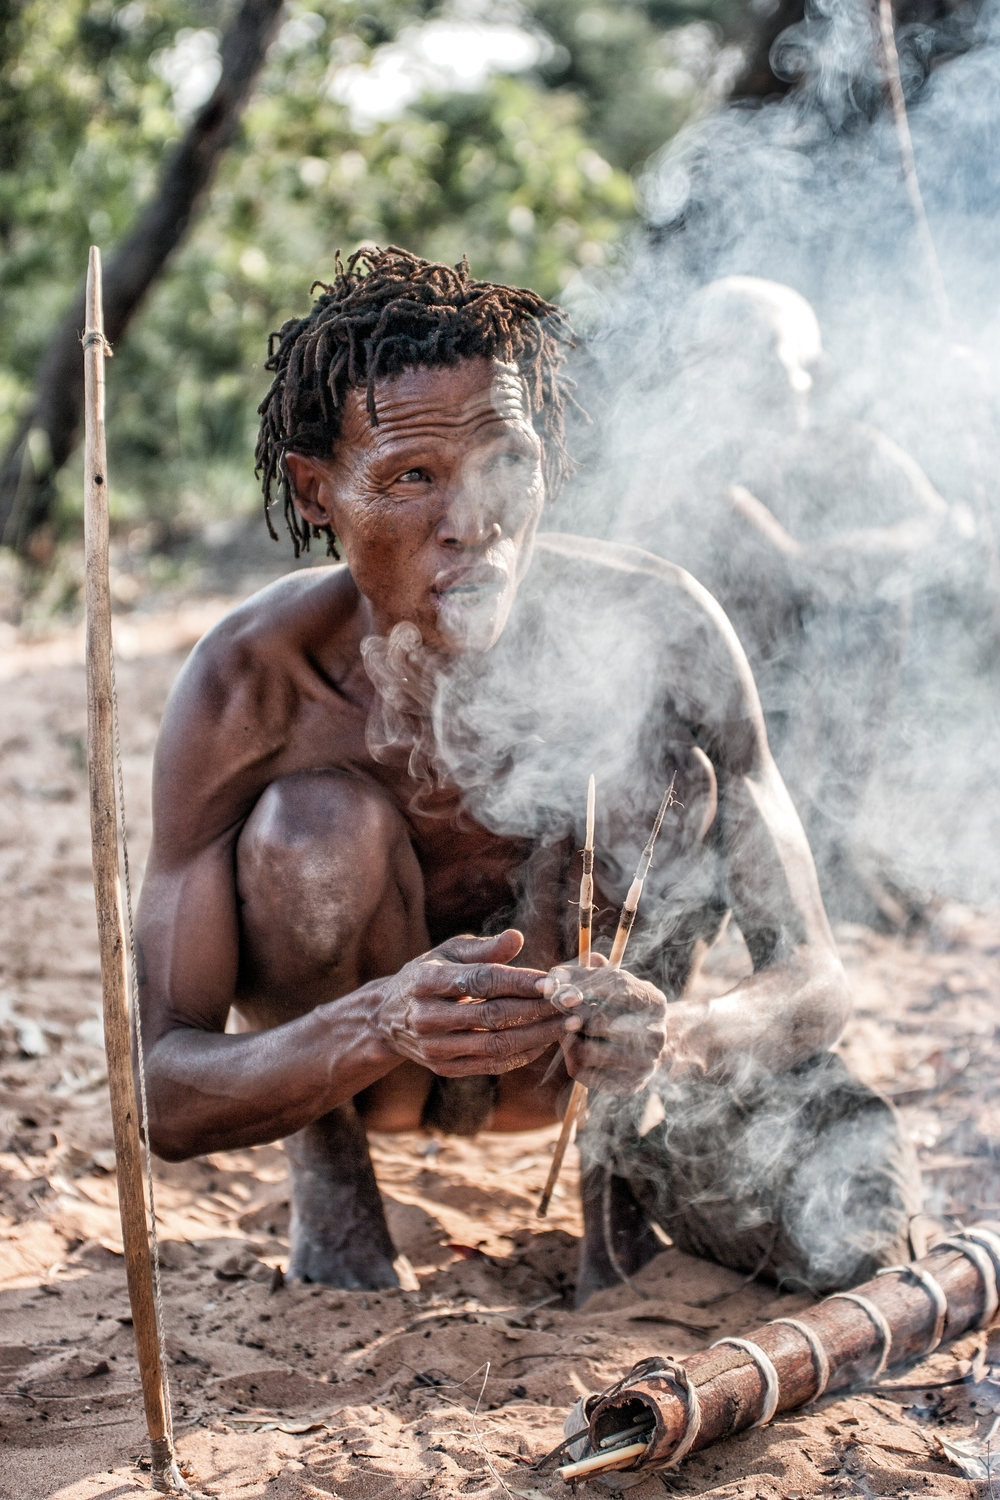 bushmen: hunters and gatherers